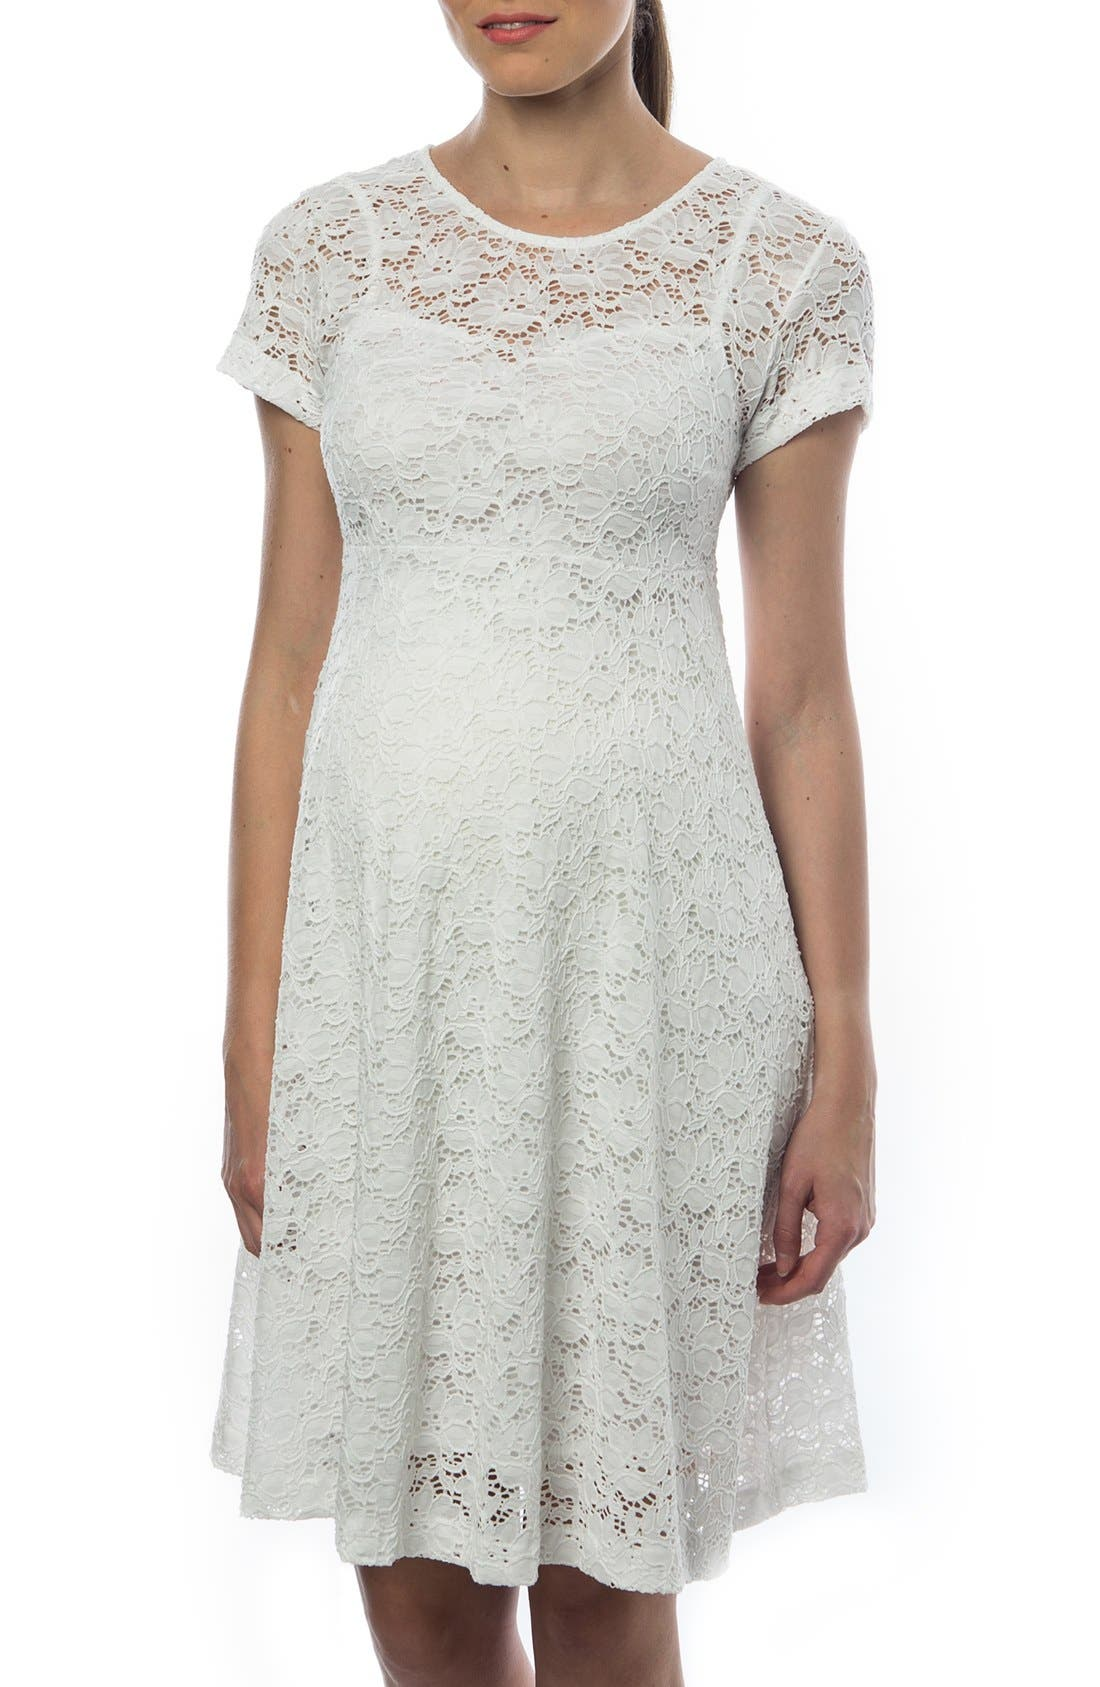 'Rodano' Lace Maternity Dress,                             Main thumbnail 1, color,